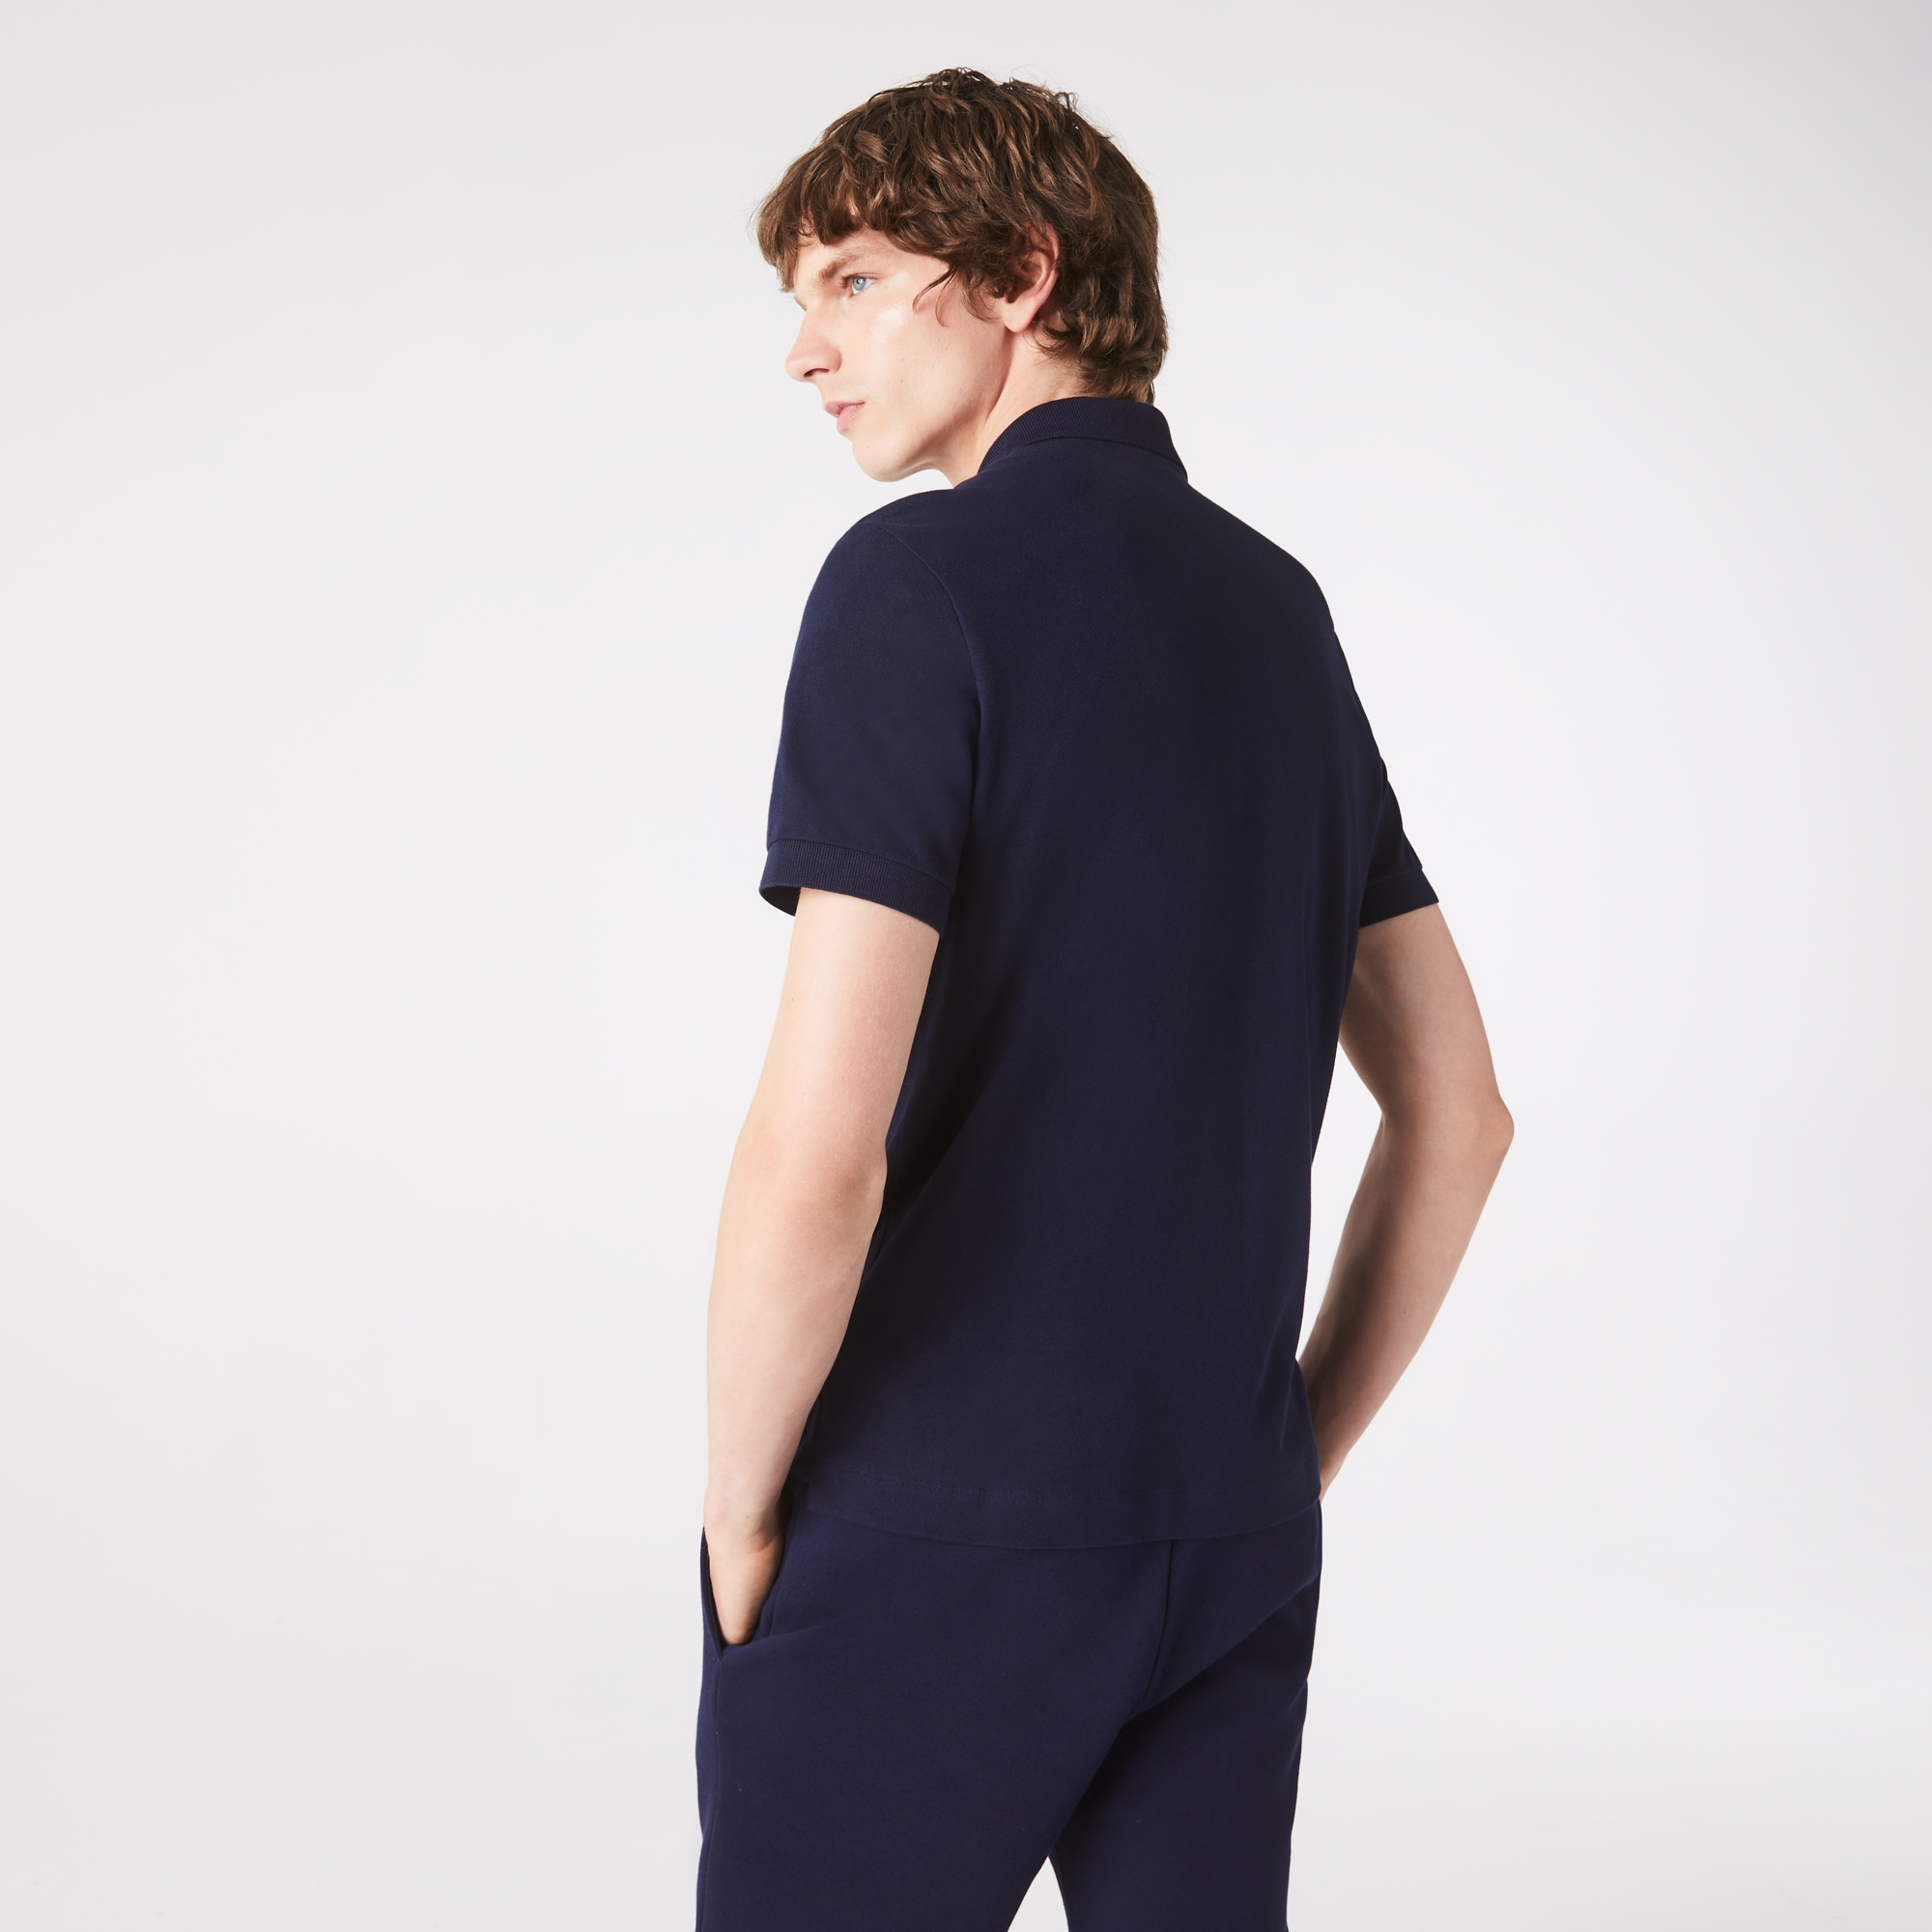 Lacoste - Paris Polo regular fit Lacoste en piqué de coton stretch - 3